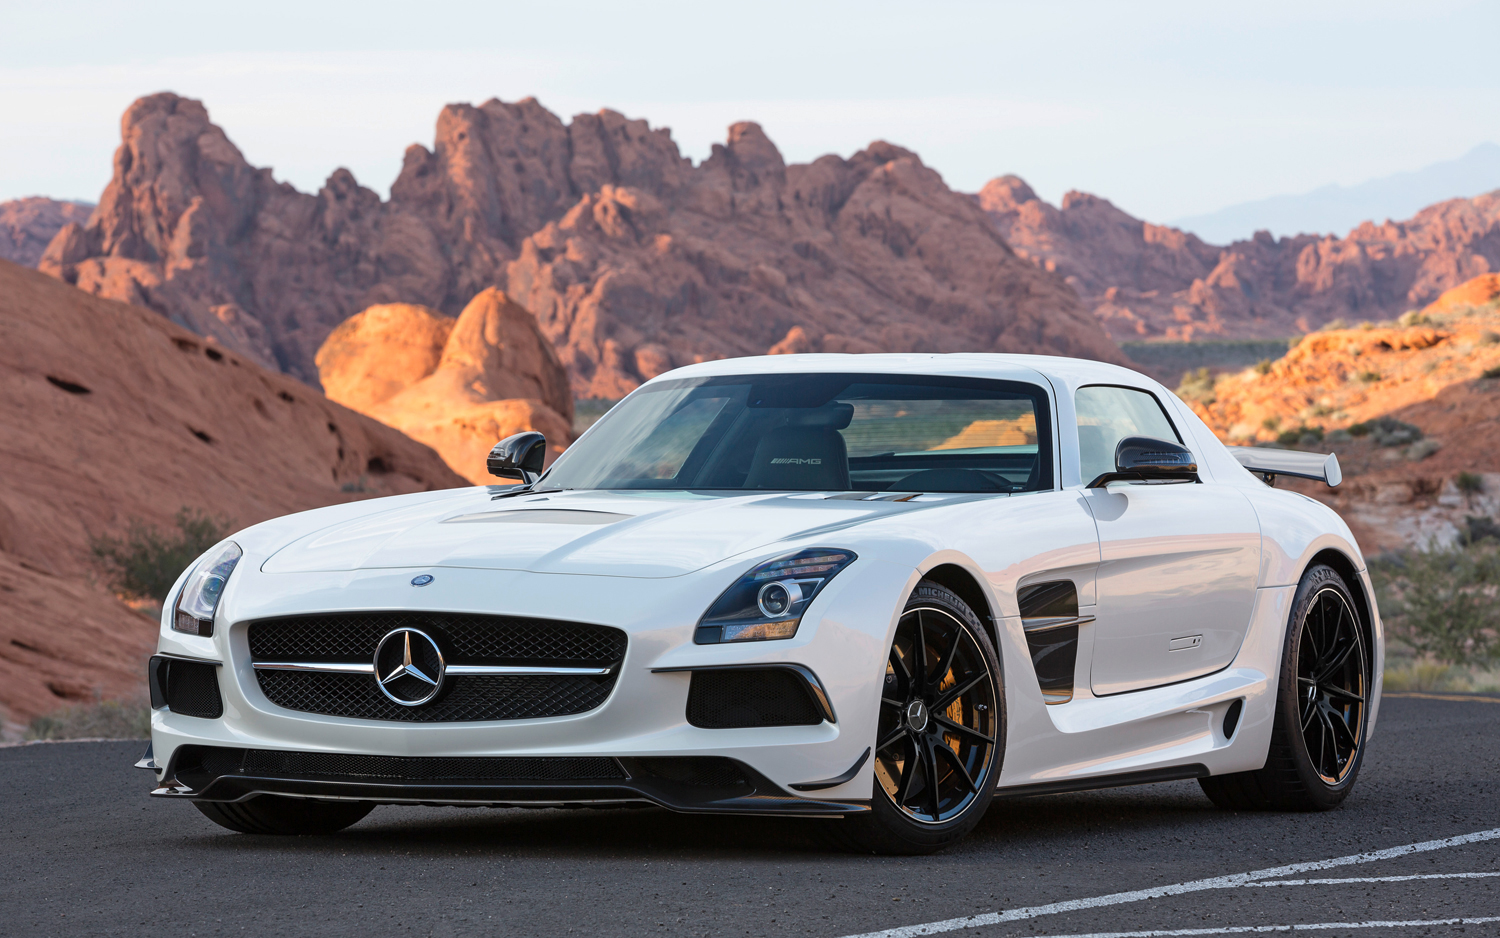 2014-Mercedes-Benz-SLS-AMG-Black-Series-front-three-quarters